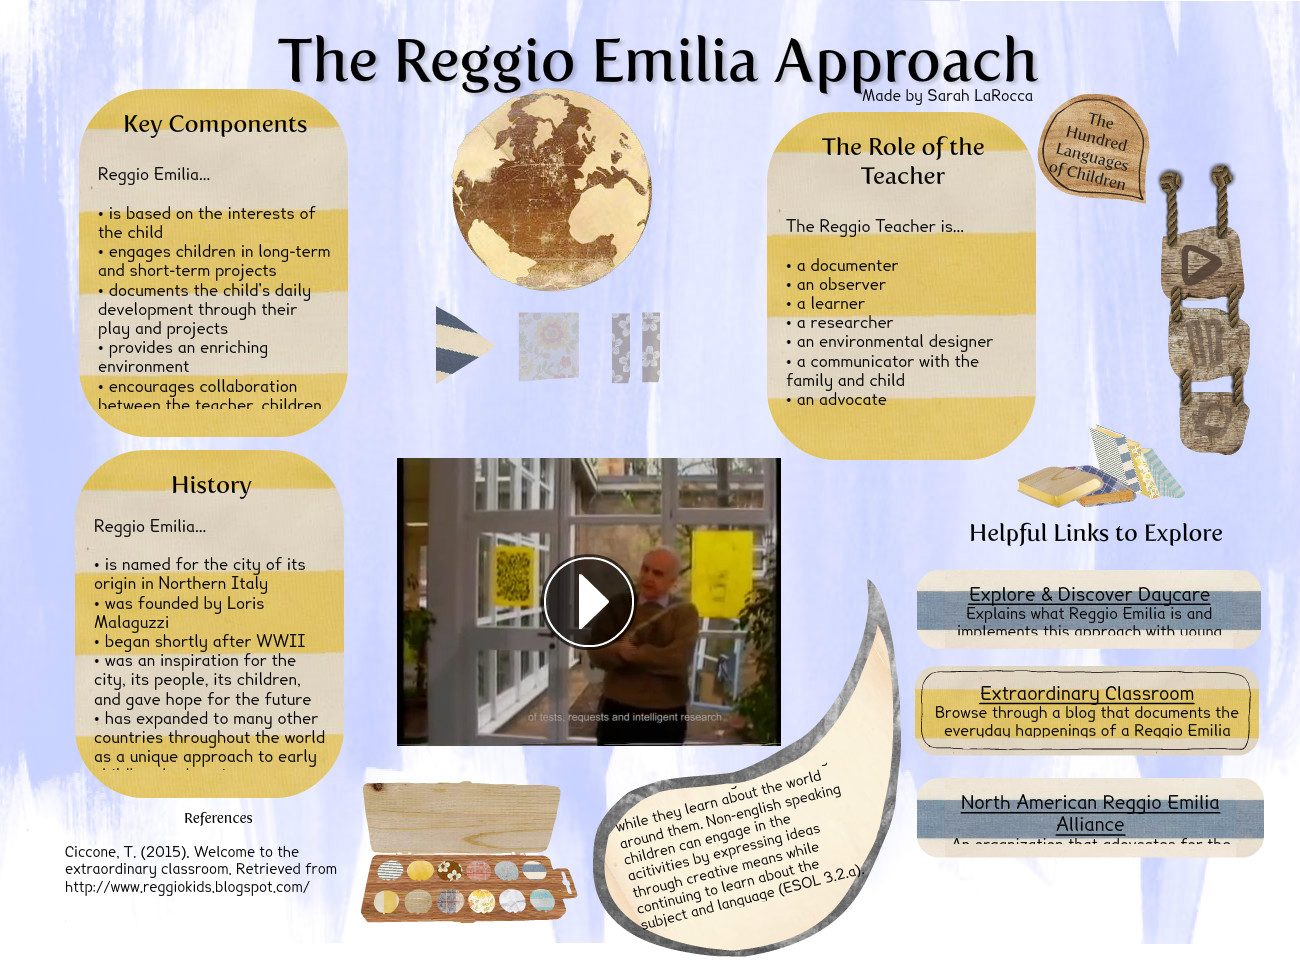 historical foundations of reggio emilia theory education essay Even though reggio emilia sounds like a new idea, the framers have relied on many of the same theorists as the united states, such as piaget , vygotsky, and other european scientists.